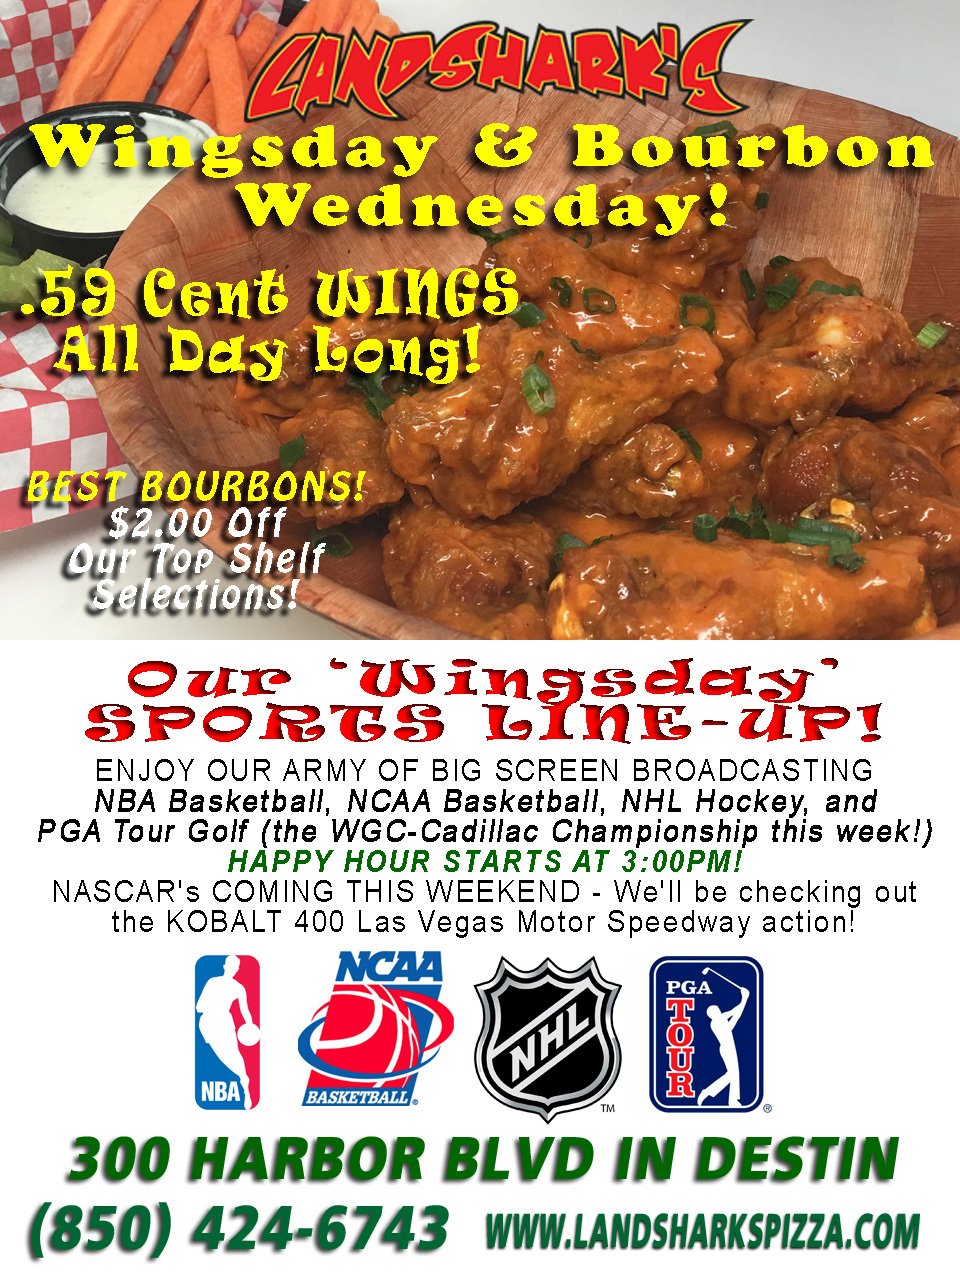 Landsharks Destin FL Hot Wing Wednesday 59 Cent Wings